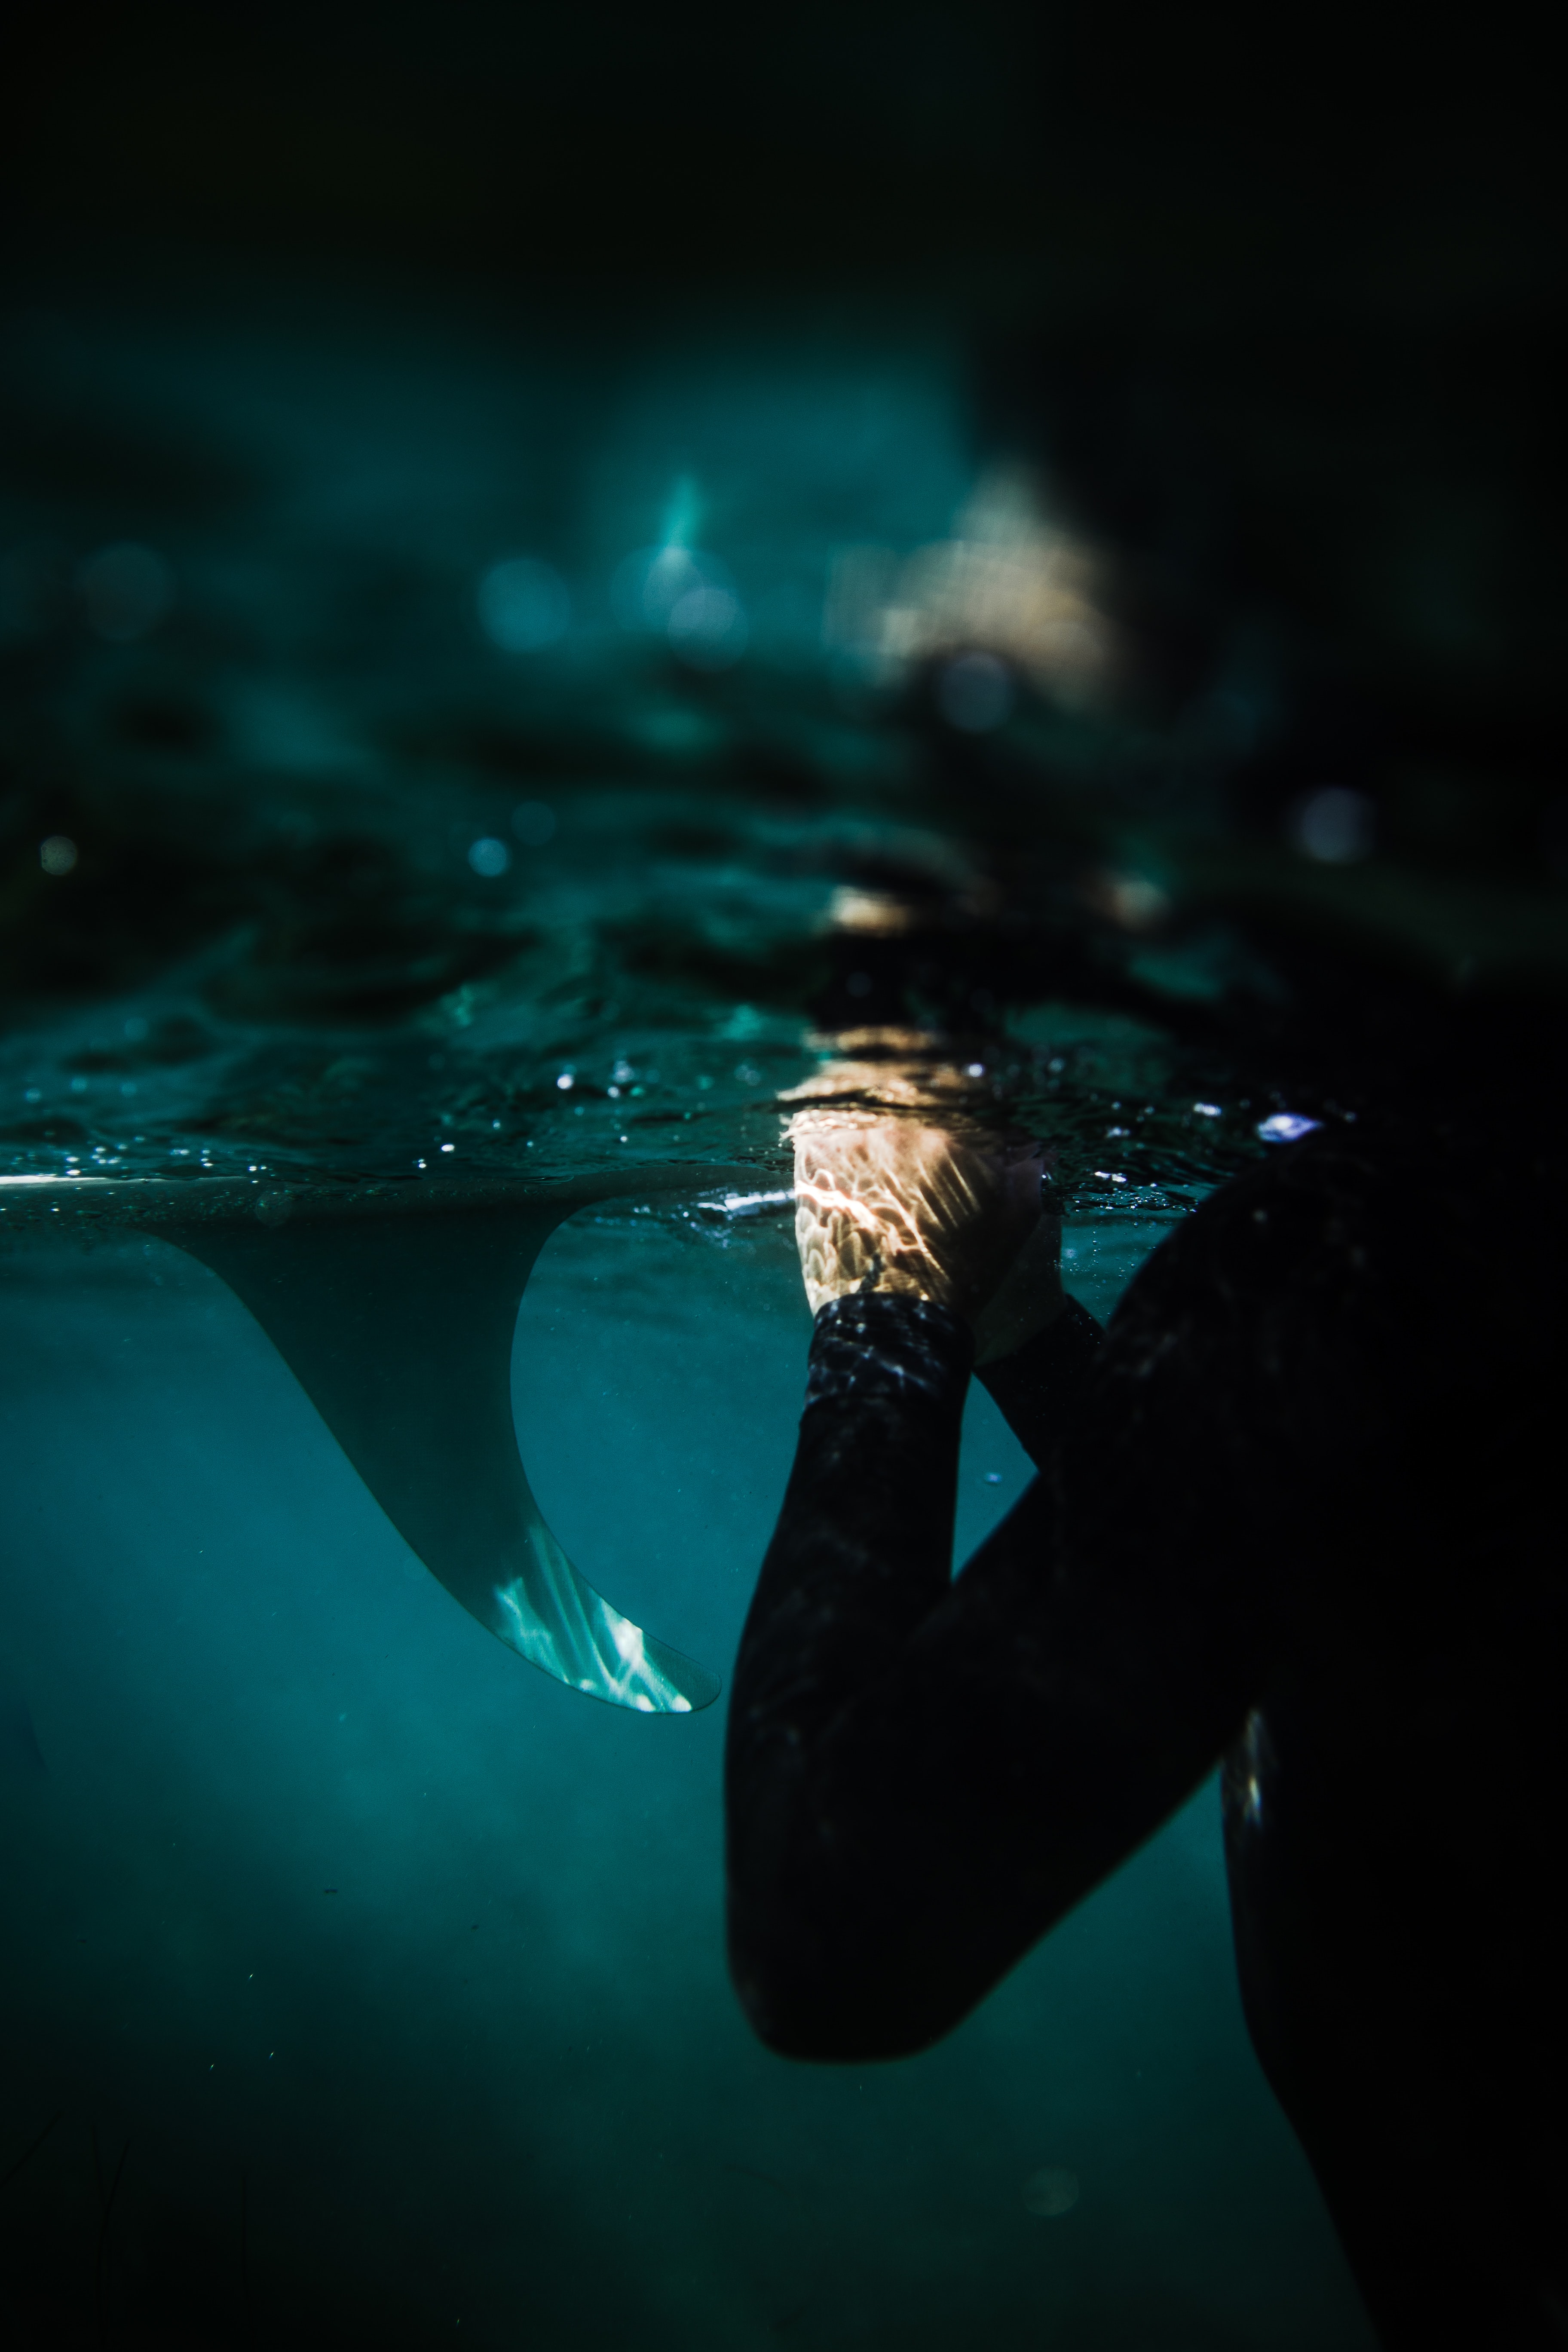 underwater photography of person submerged in water